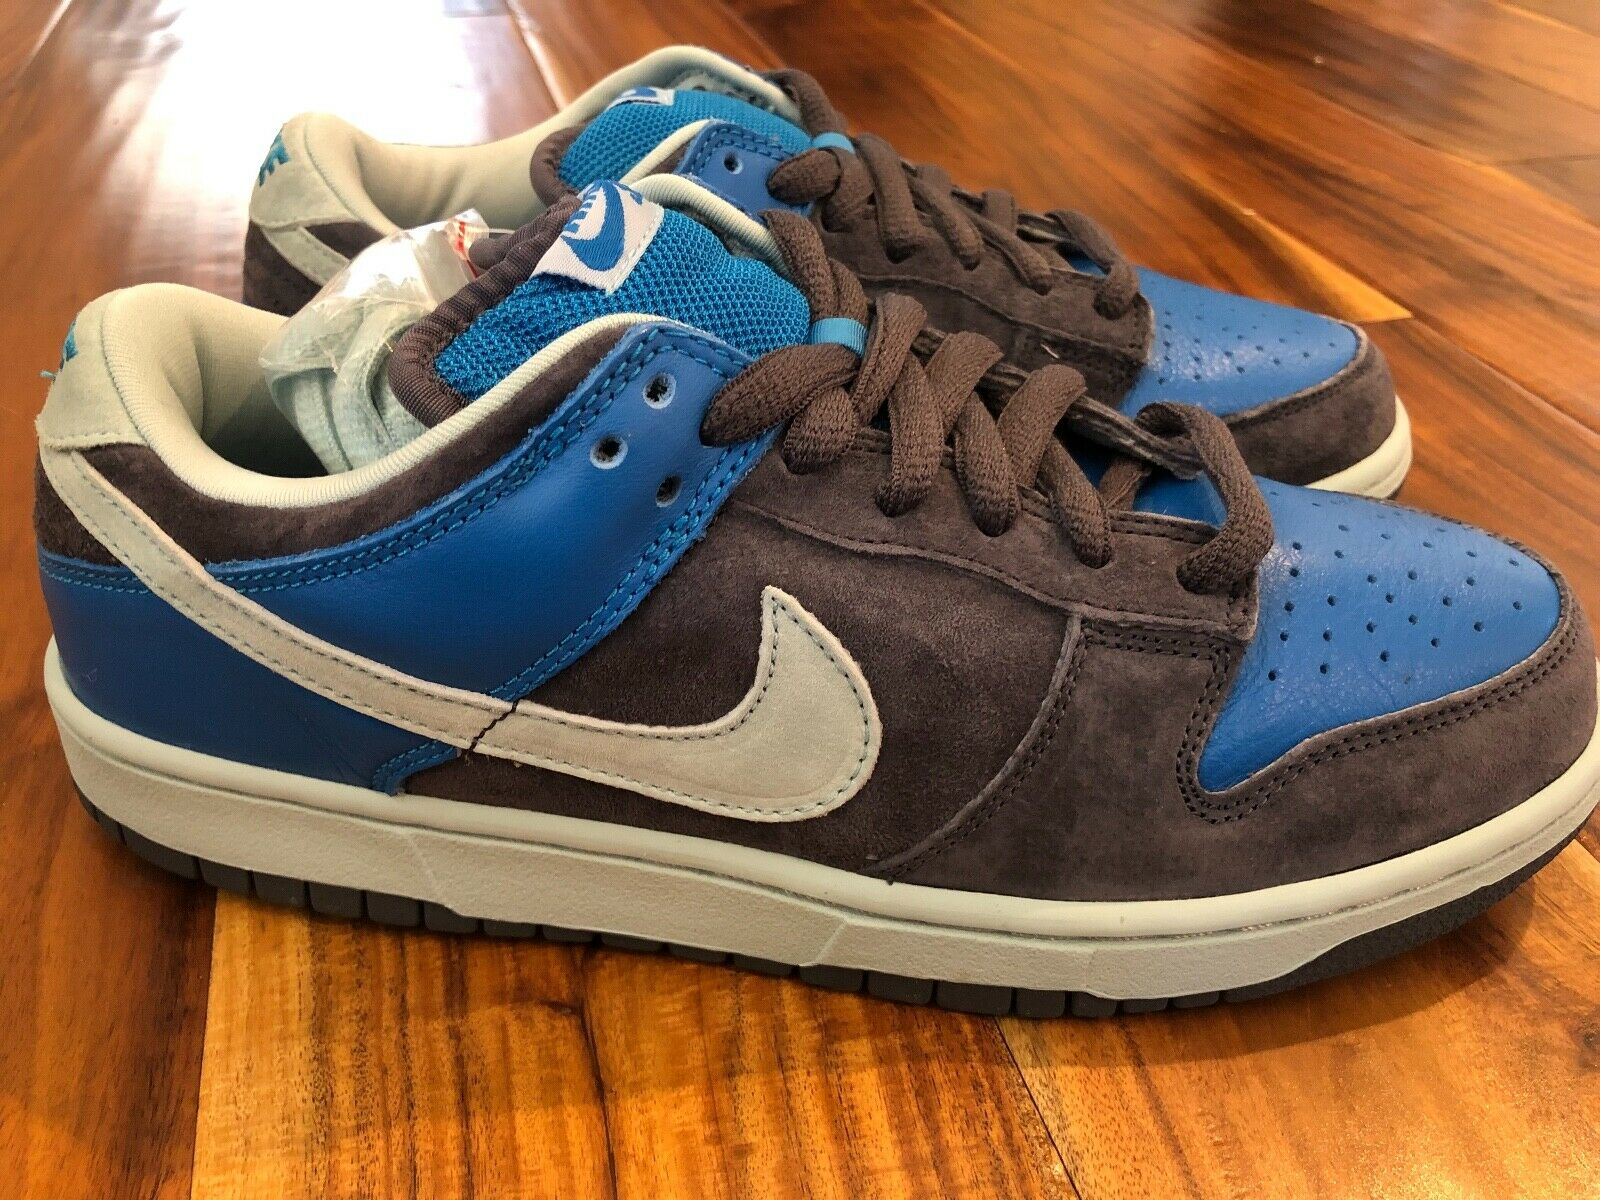 Nike Pro SB Dunk Low   Aqua Chalk   Size 7.5 -  2006 release - DS - Authentic